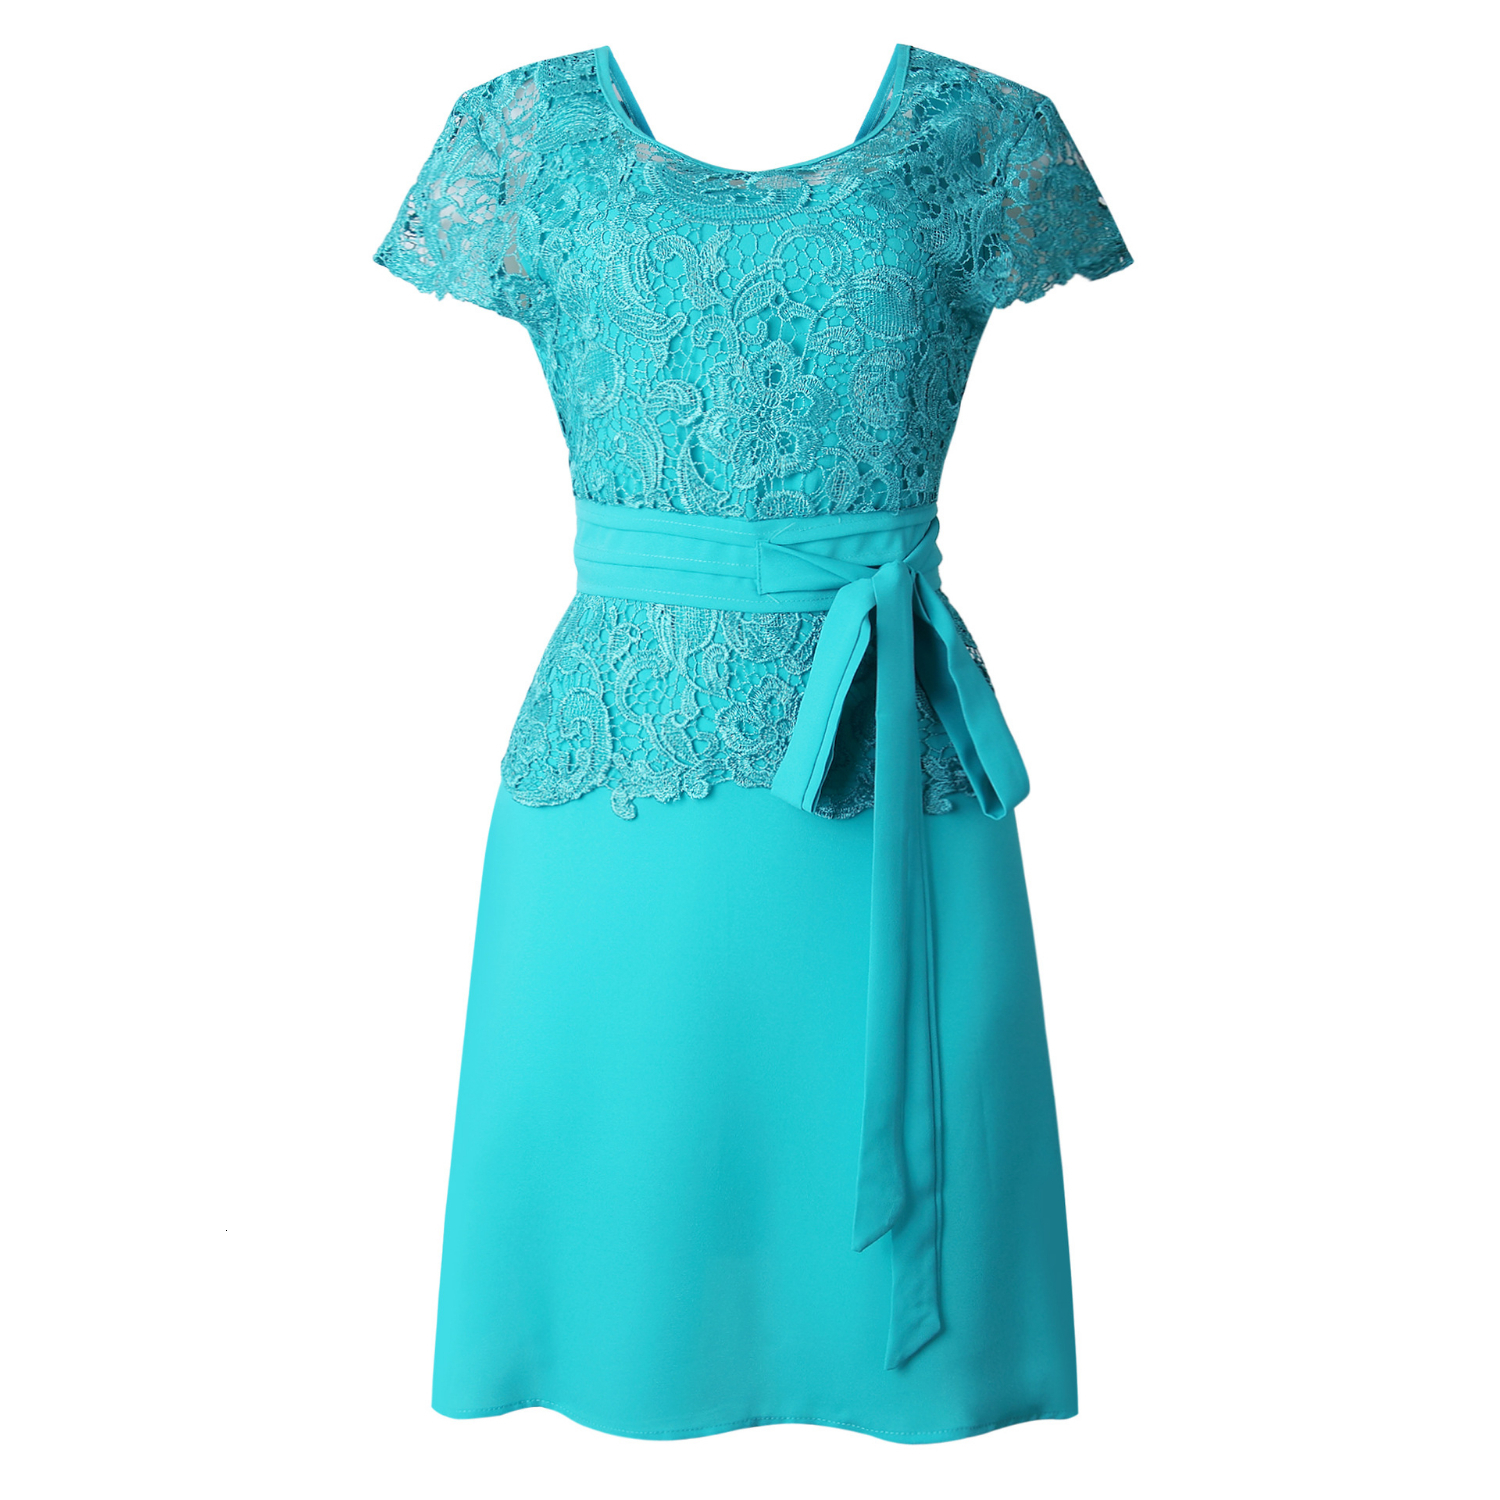 BacklakeGirls New Arrival Women's Solid Color Lace Short Sleeve Woman Dress Brides Mother Dresses For Weddings Plus Size